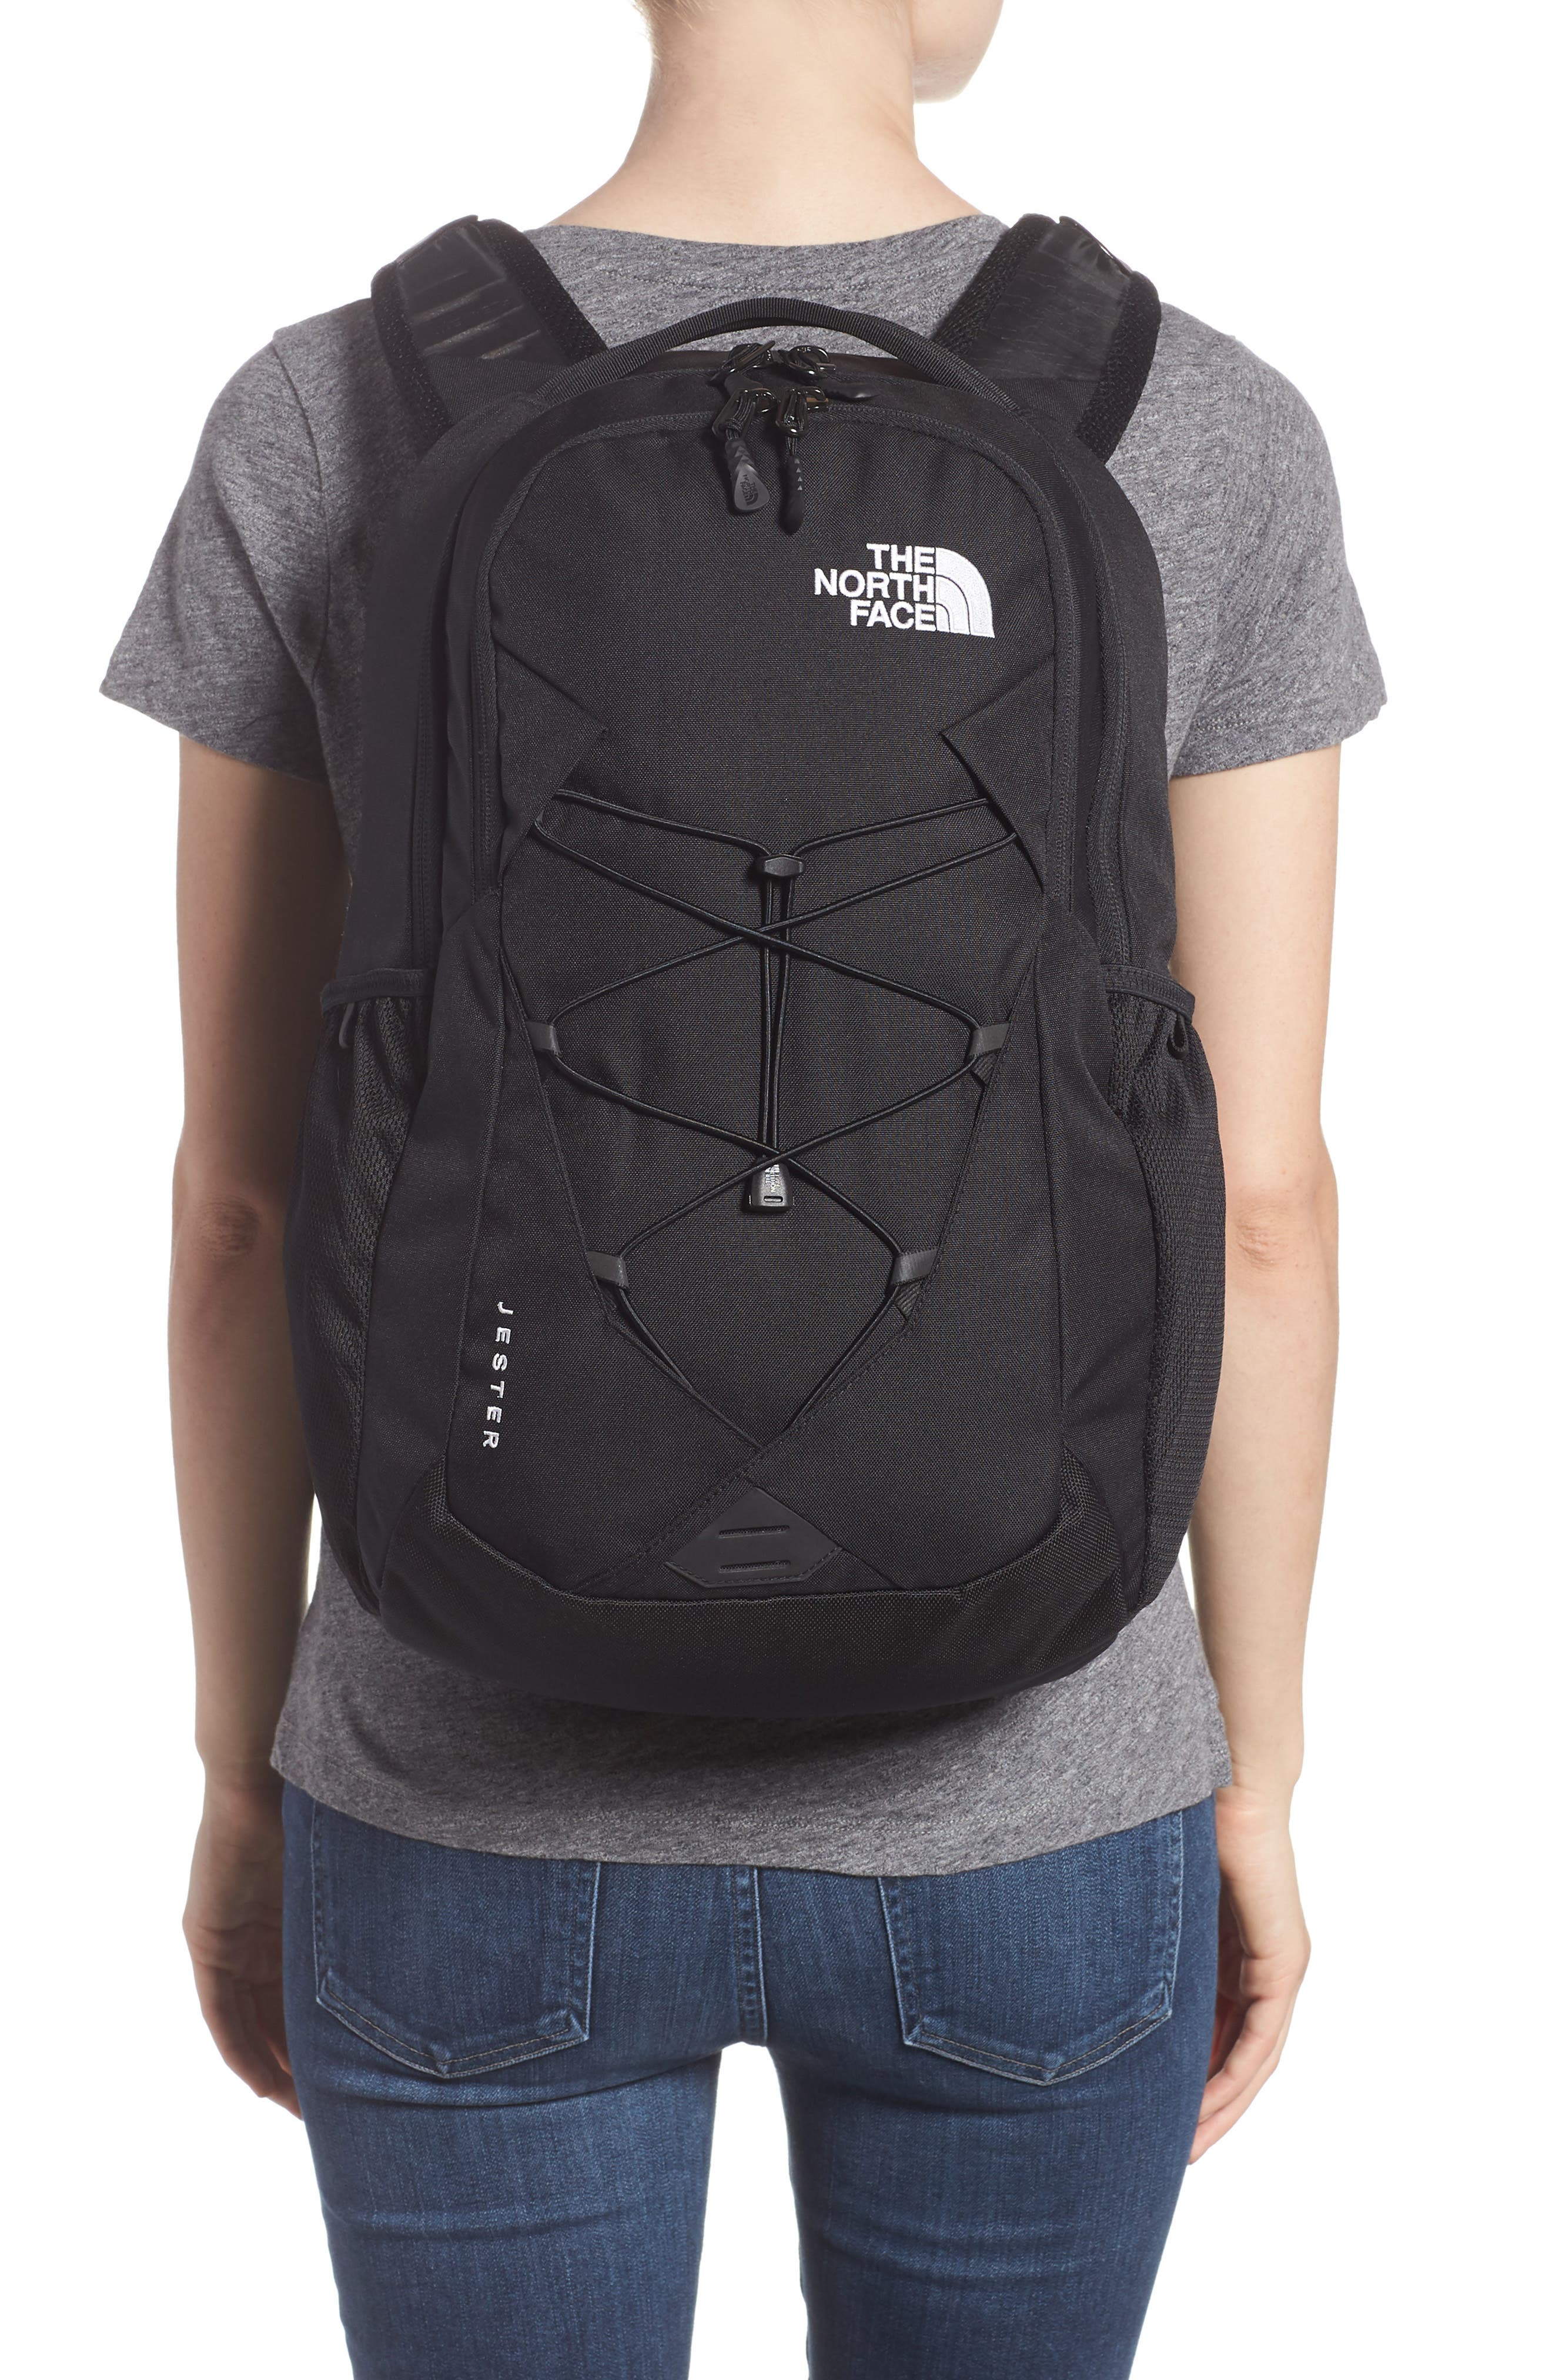 THE NORTH FACE, 'Jester' Backpack, Alternate thumbnail 2, color, TNF BLACK